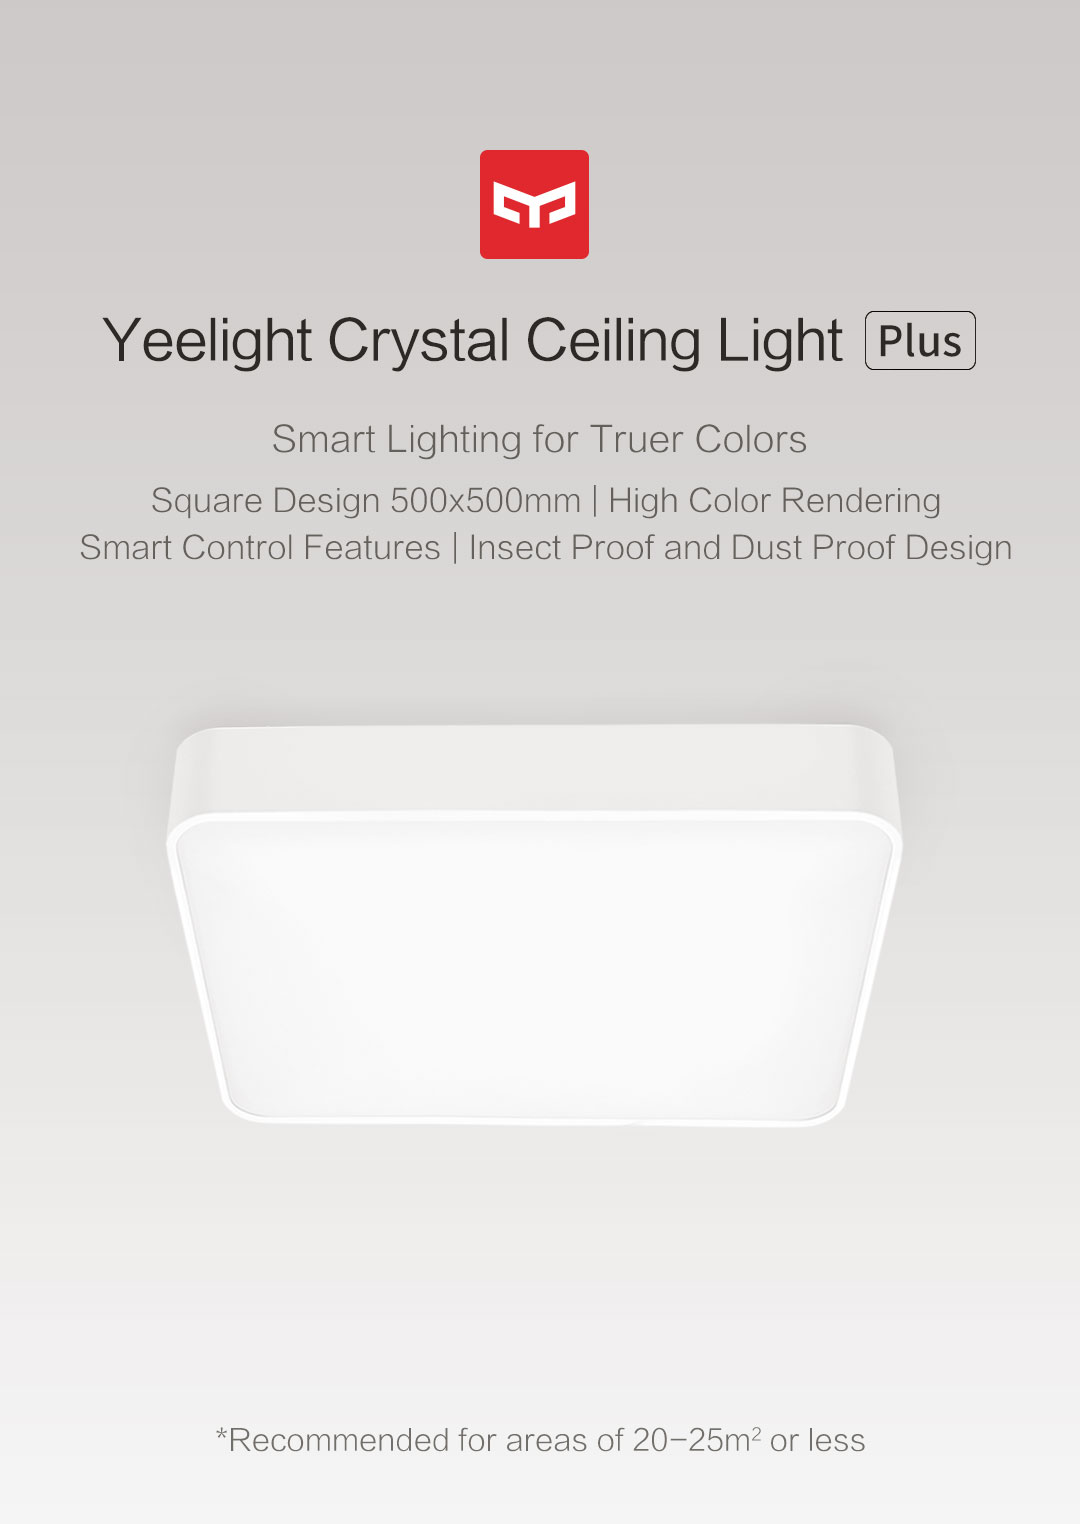 Crystal Ceiling Light Plus Yeelight